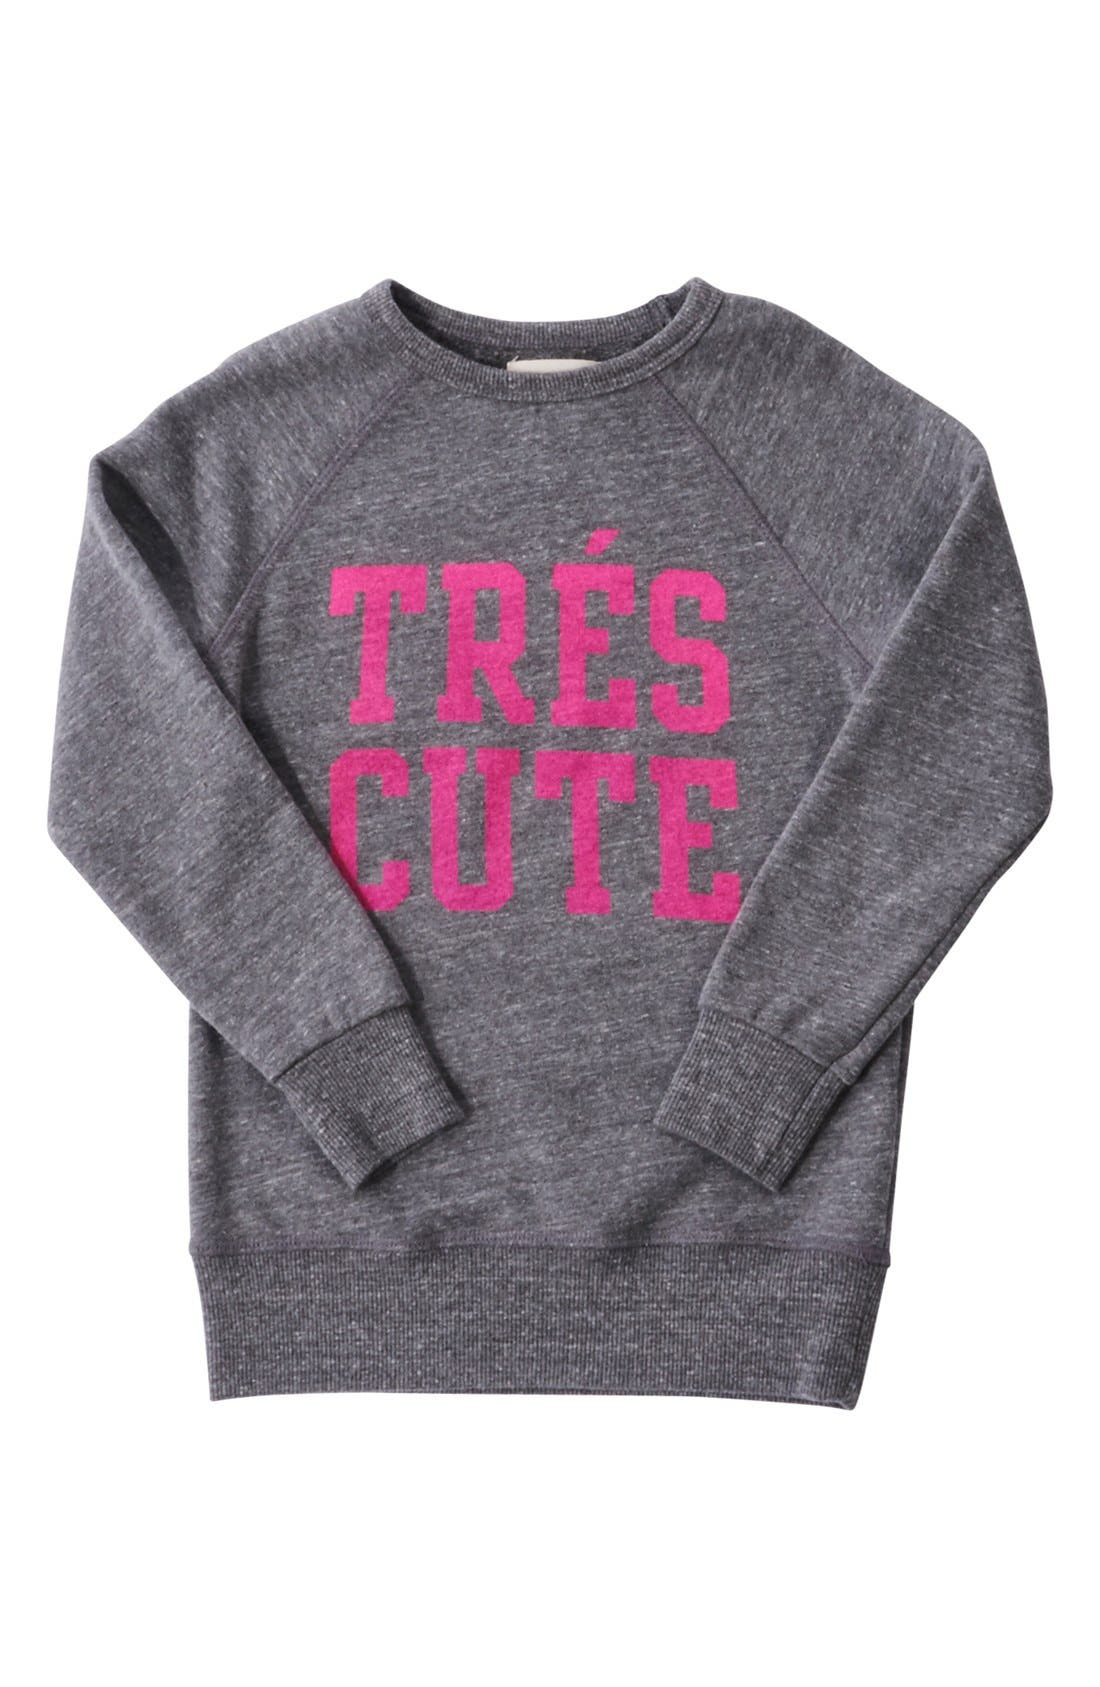 Alternate Image 2  - Peek 'Très Cute' Graphic Sweatshirt (Toddler Girls, Little Girls & Big Girls)